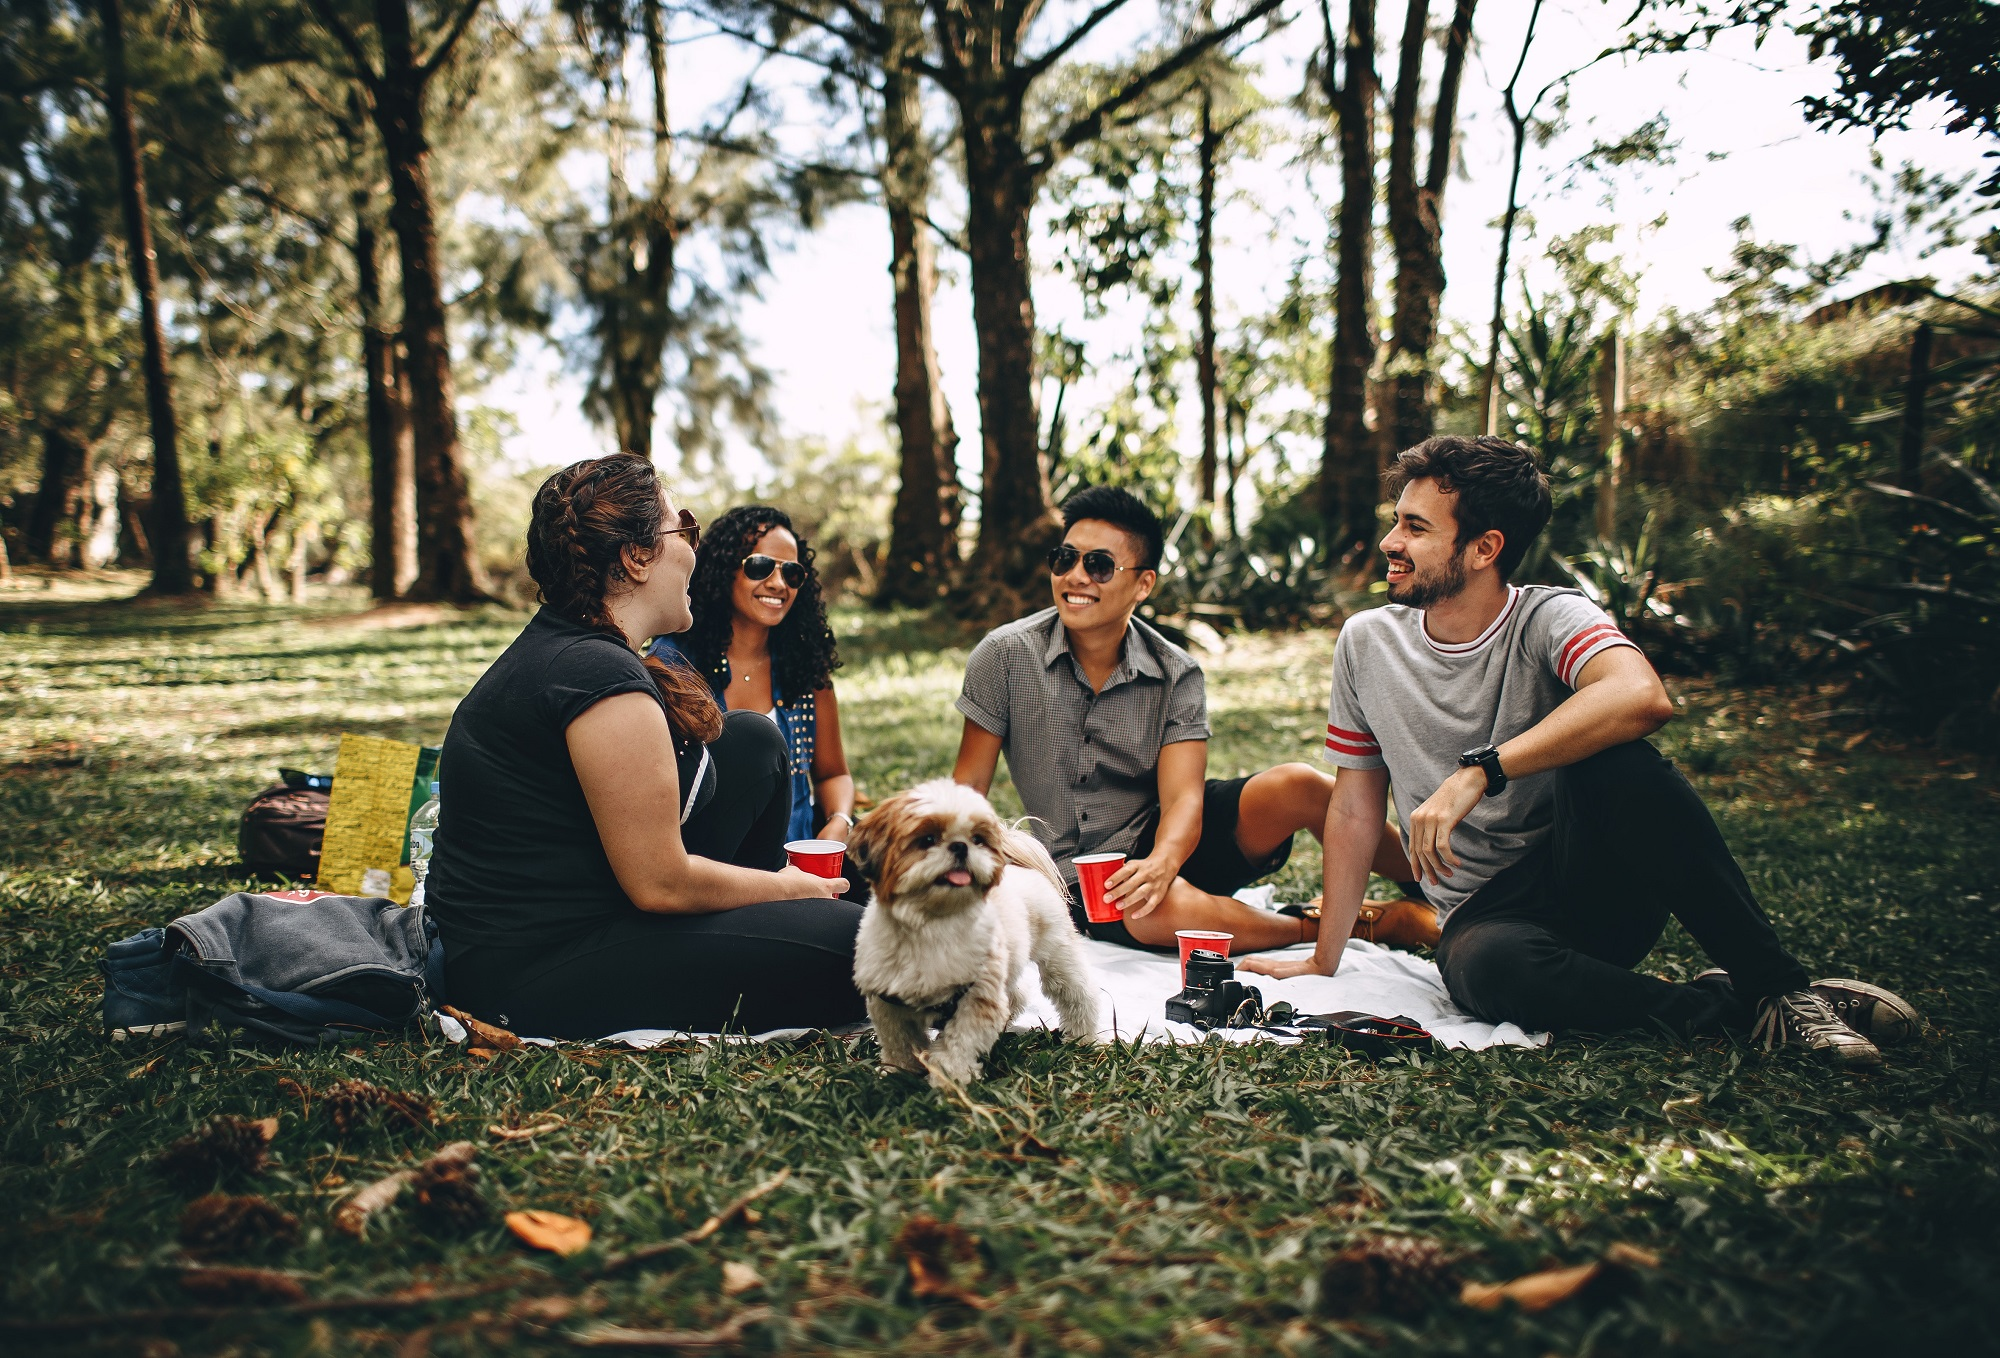 College students hanging out in a park